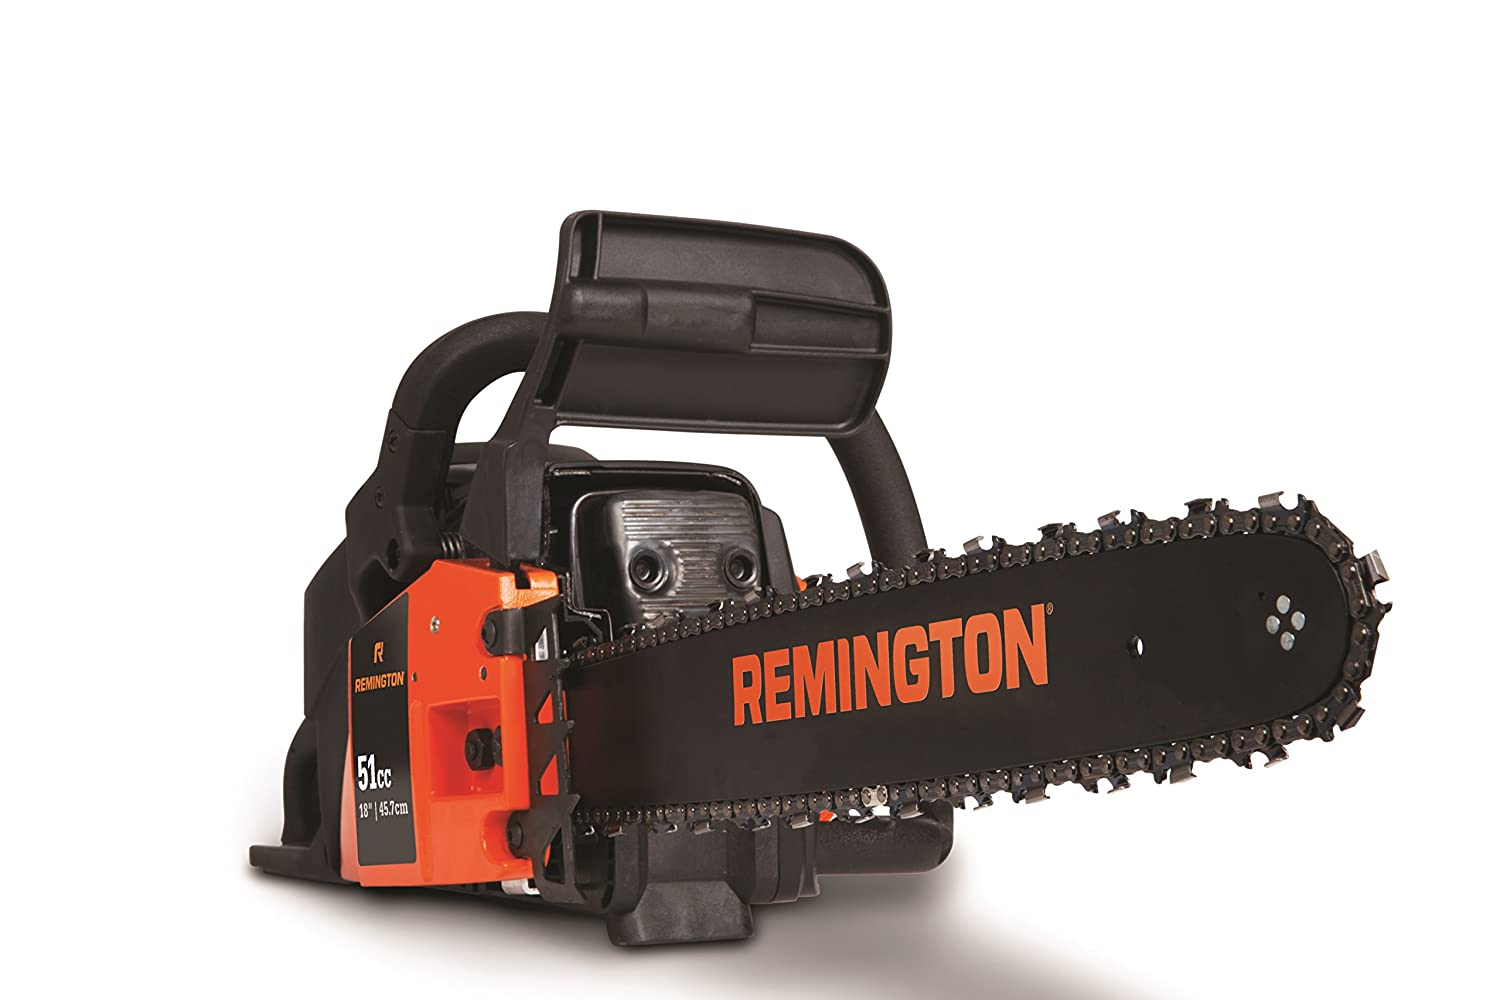 5. Remington RM5118R Rodeo – Good Value Gas Chainsaw